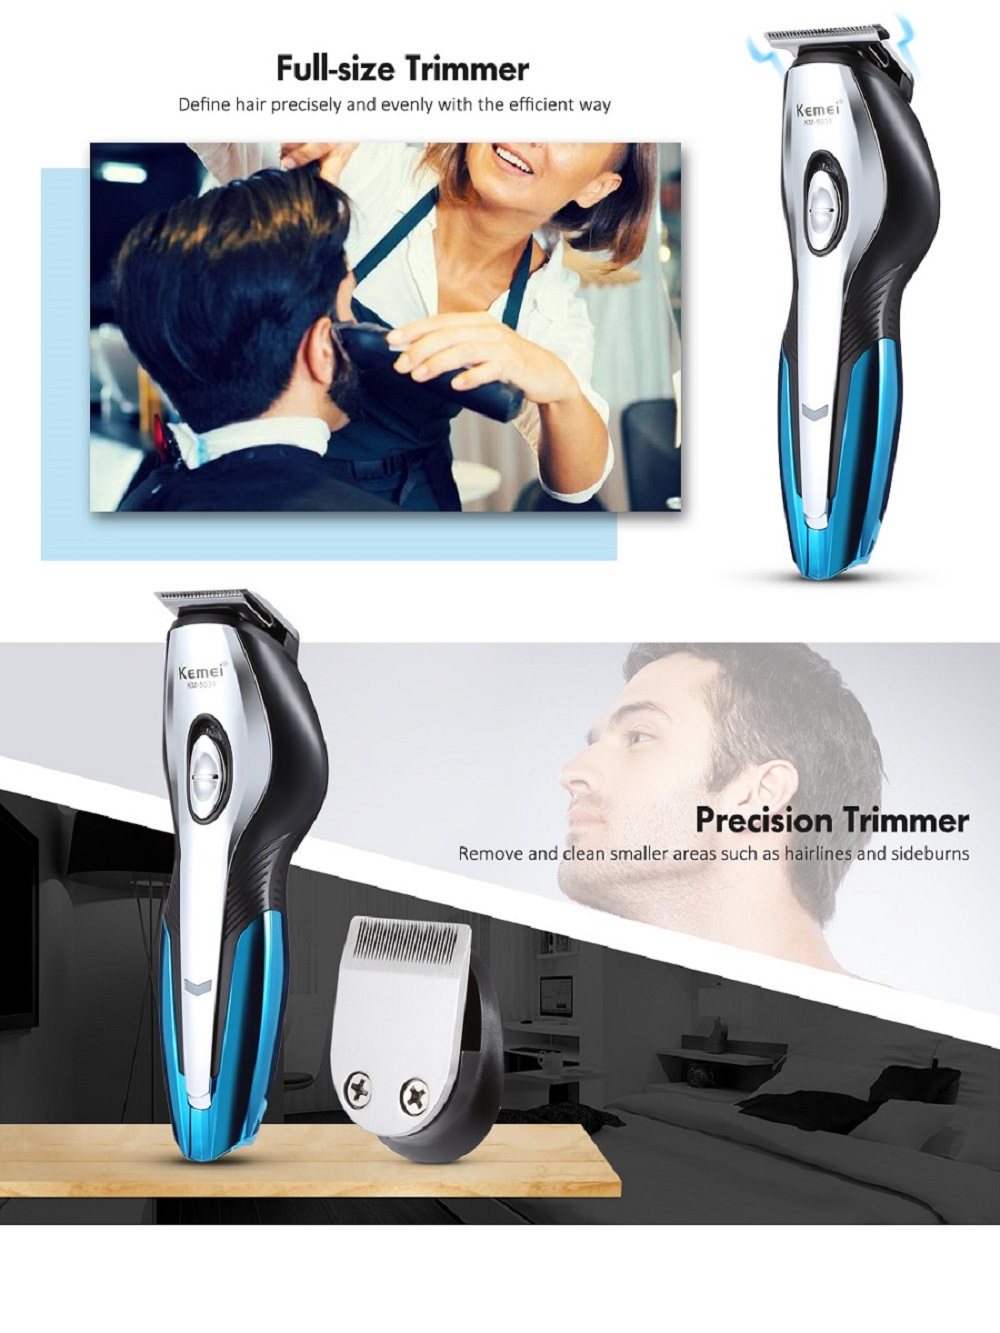 Kemei KM-5031 11 in 1 Hair Clipper Shaver Nose / Ear Trimmer Grooming Kit